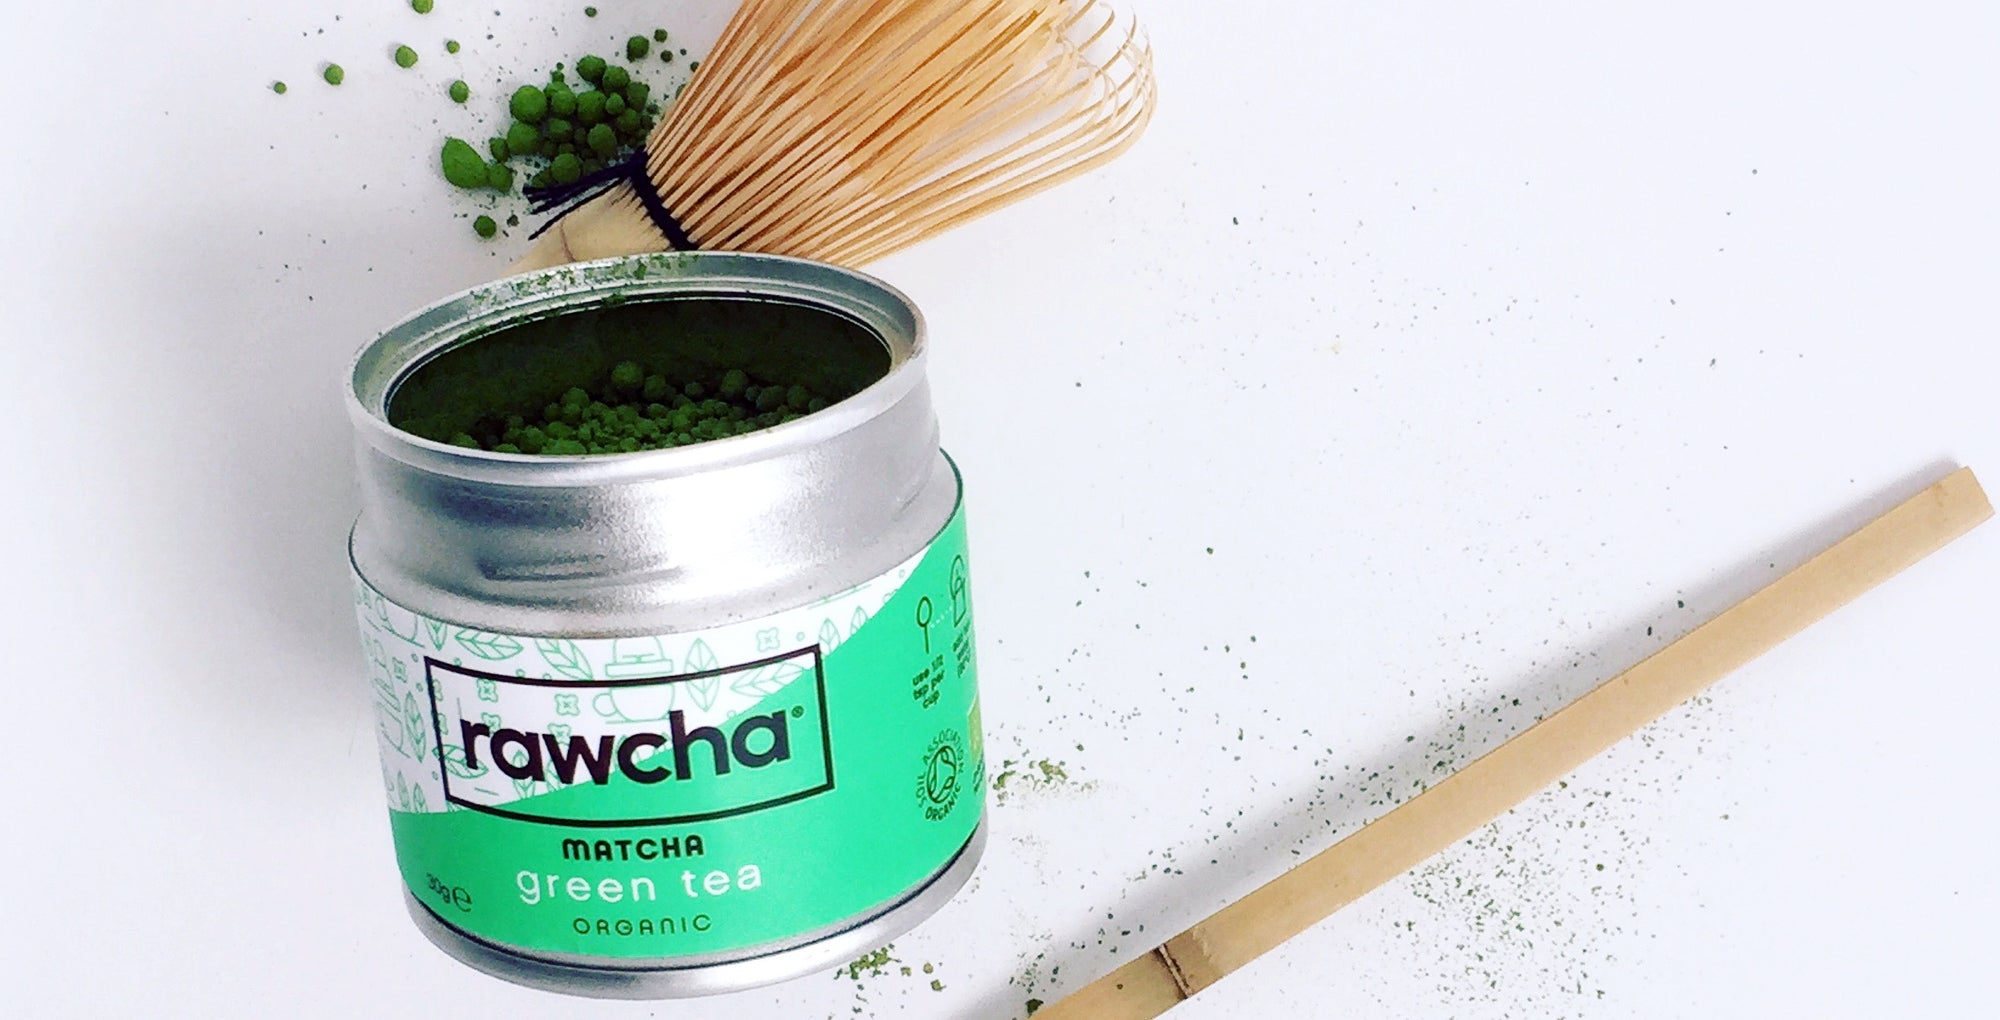 How to choose good quality matcha - the ultimate matcha green tea quality guide.